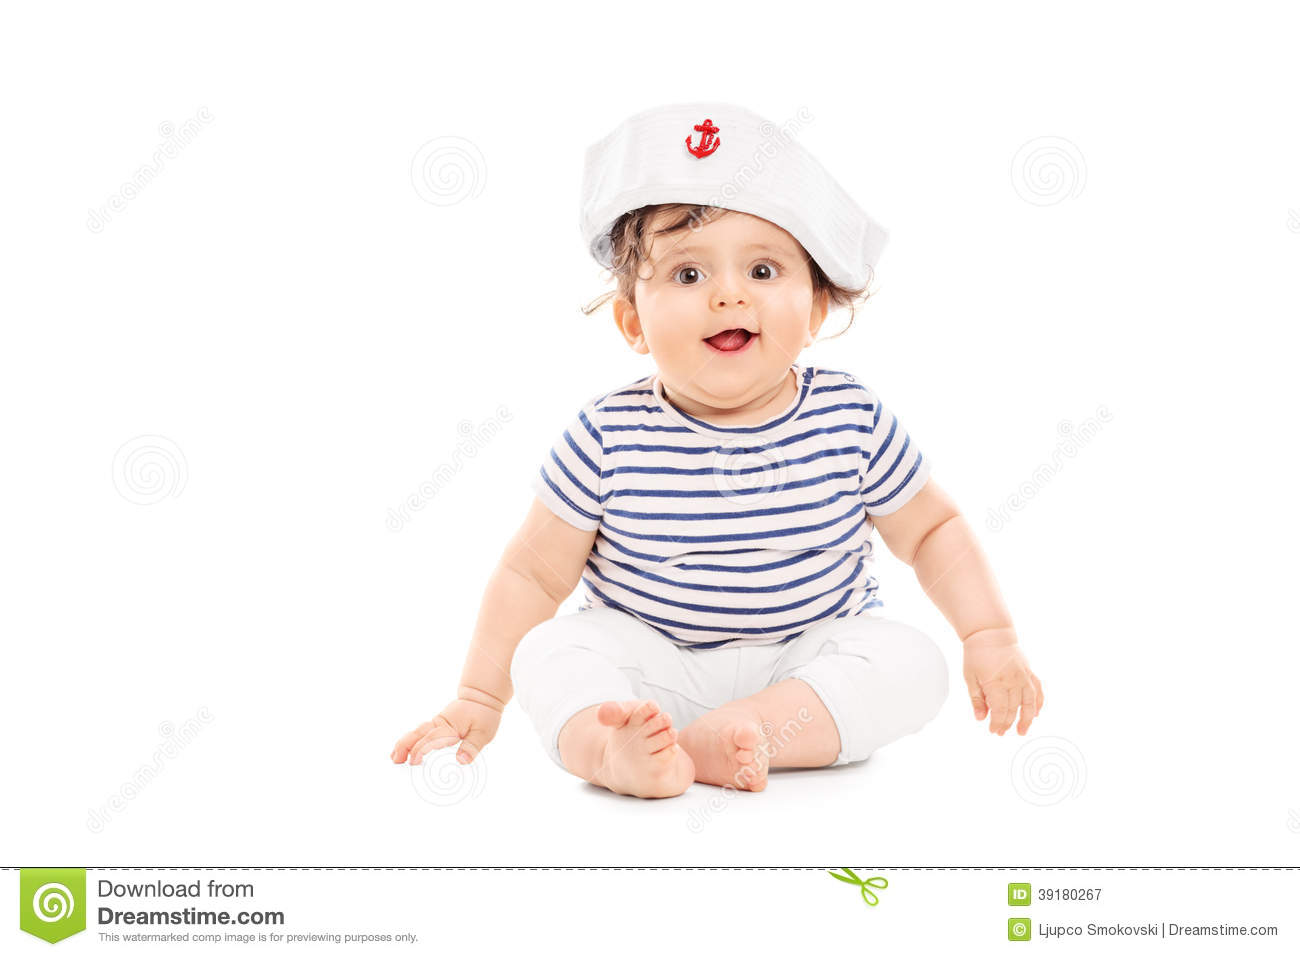 465c8ec2f Cute Baby Girl With Sailor Hat Stock Image - Image of sailor, happy ...